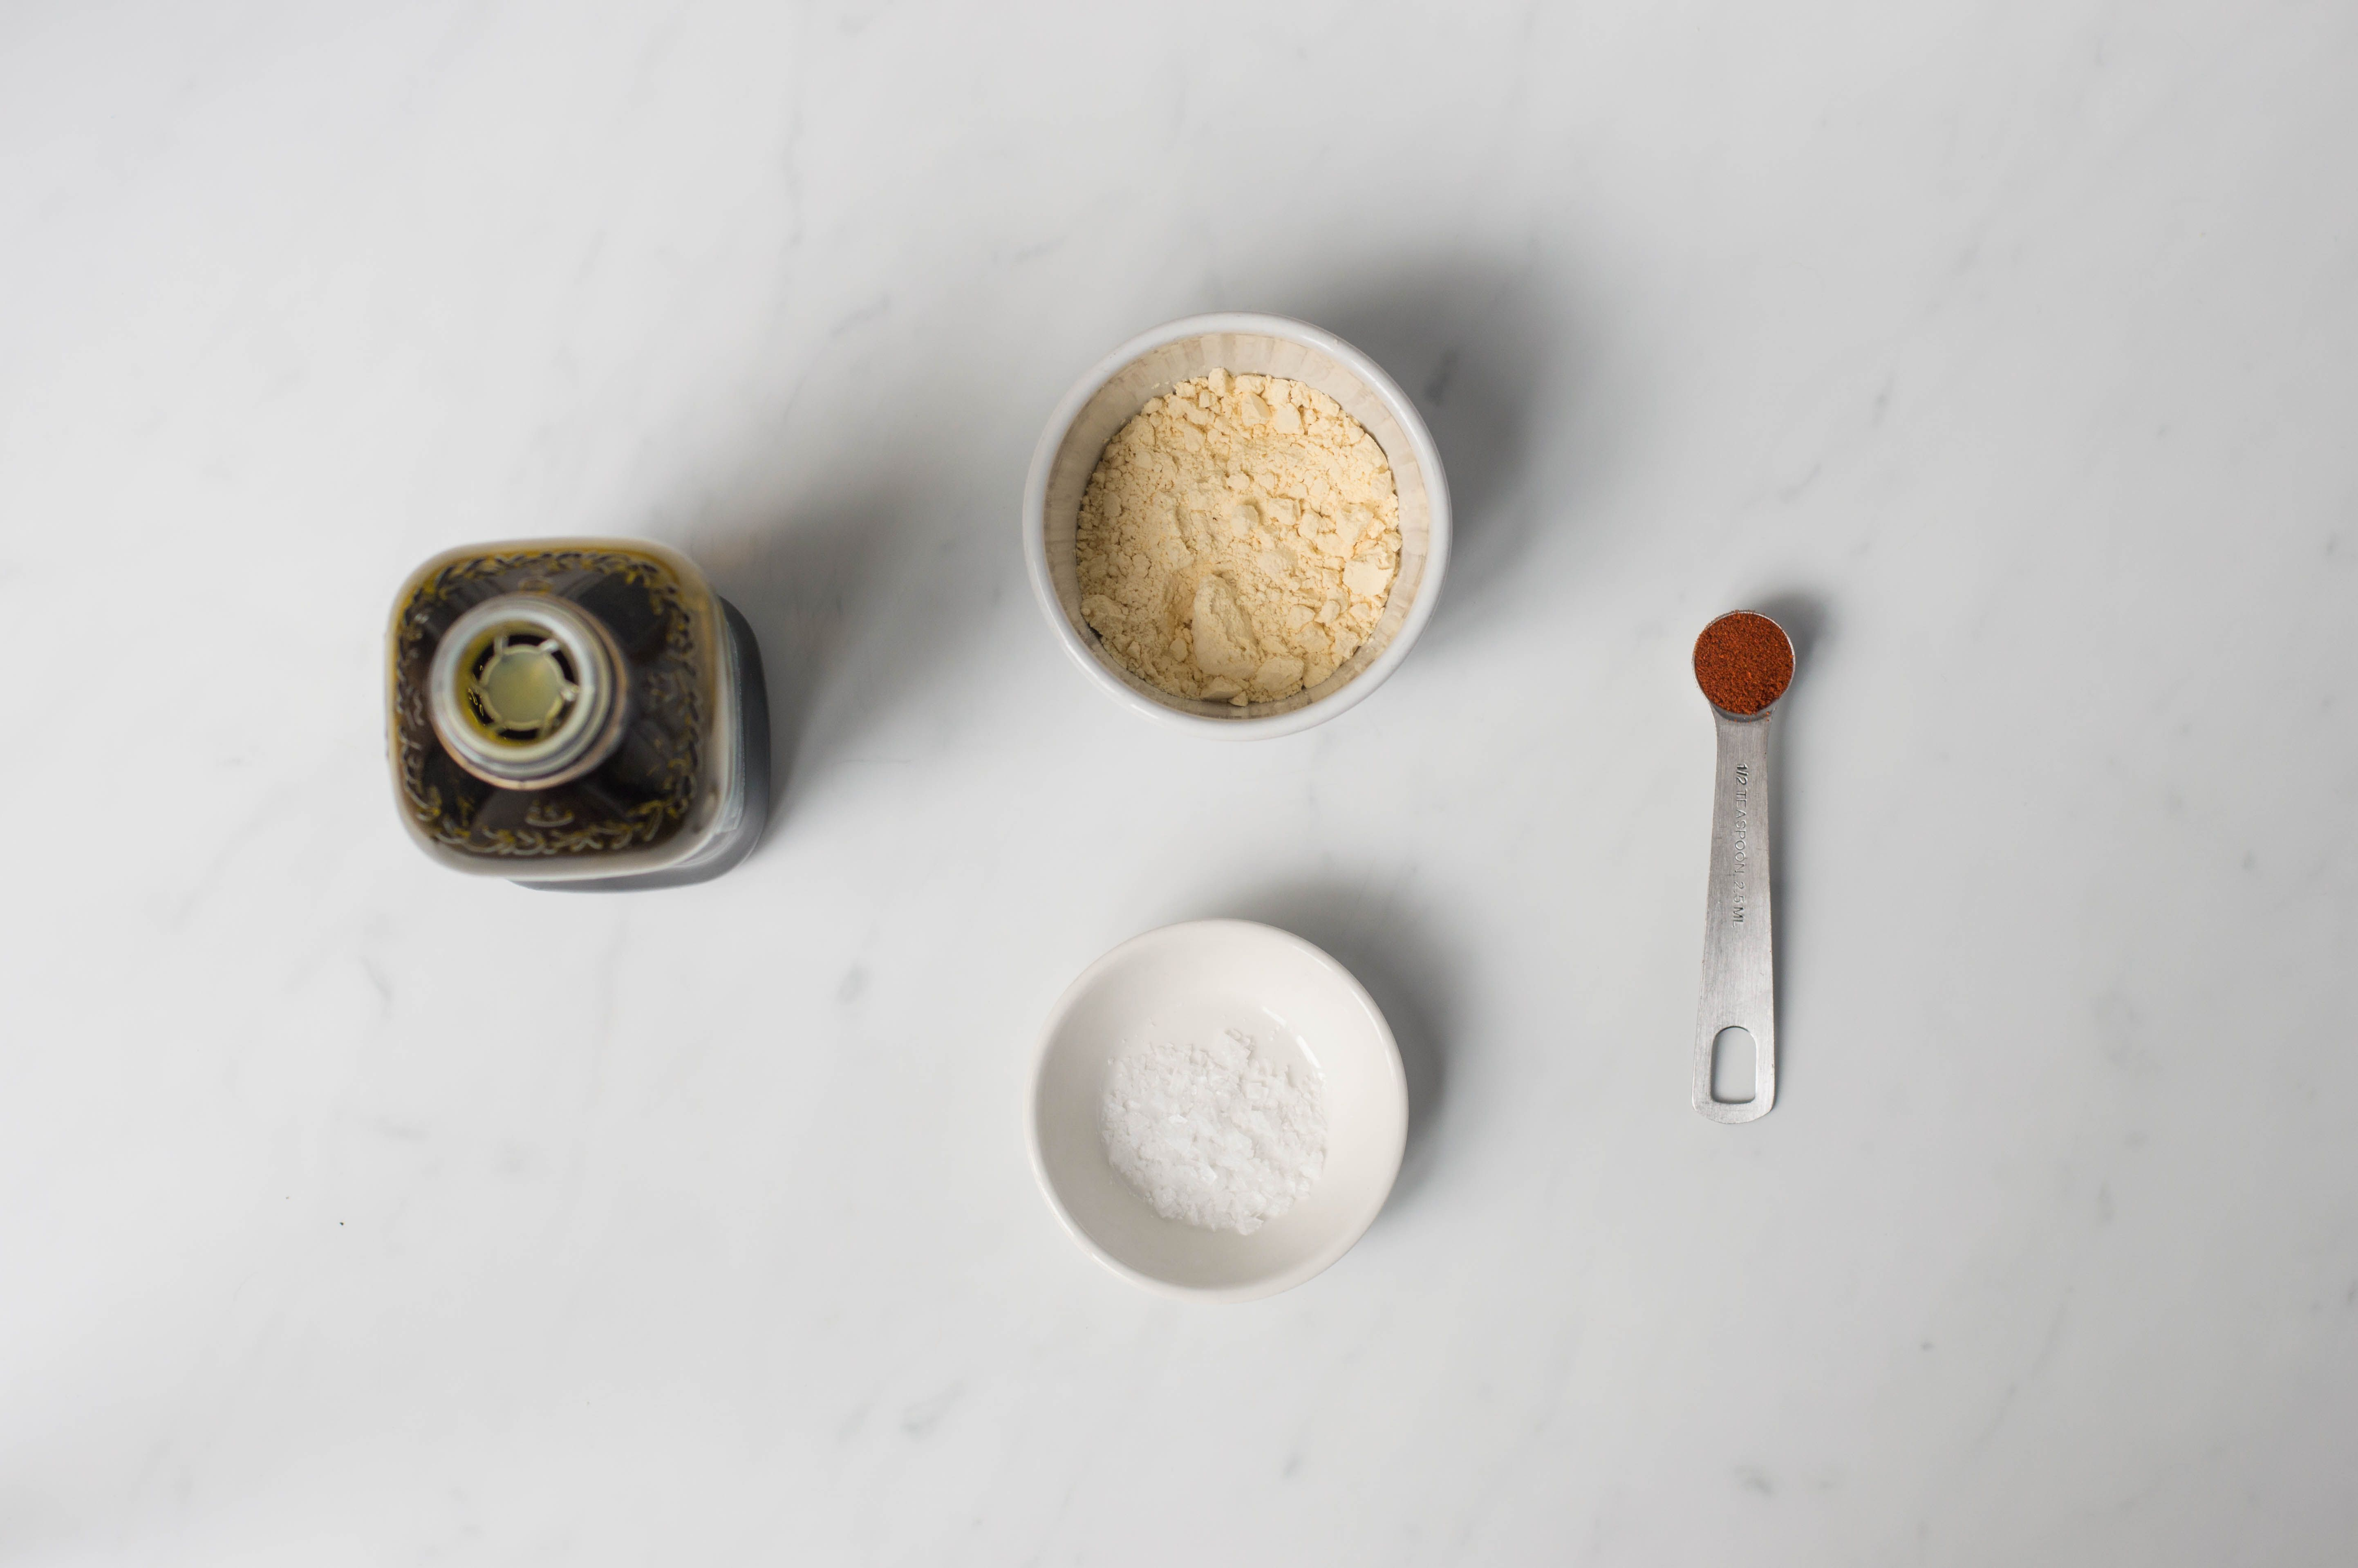 Ingredients for frying the cauliflower